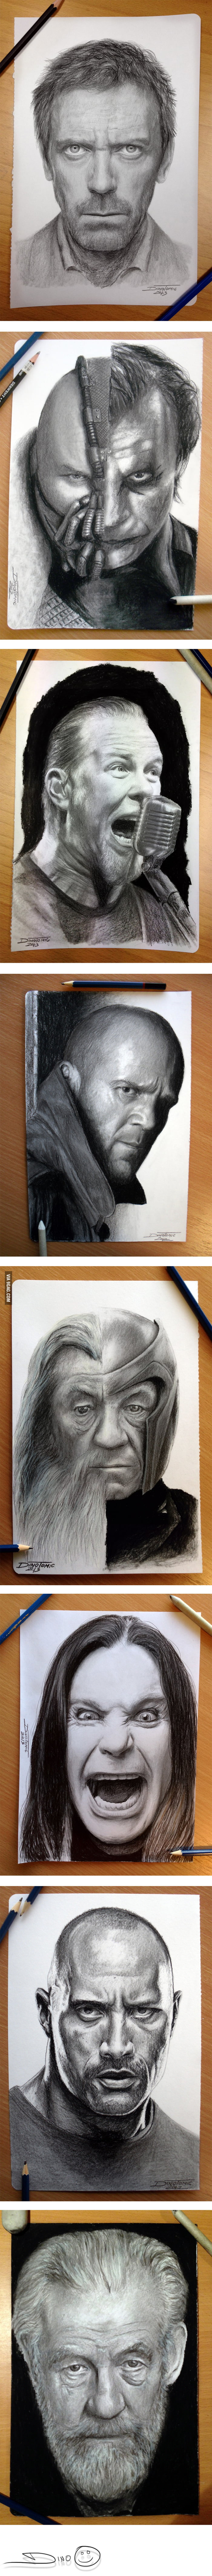 Some epic drawings